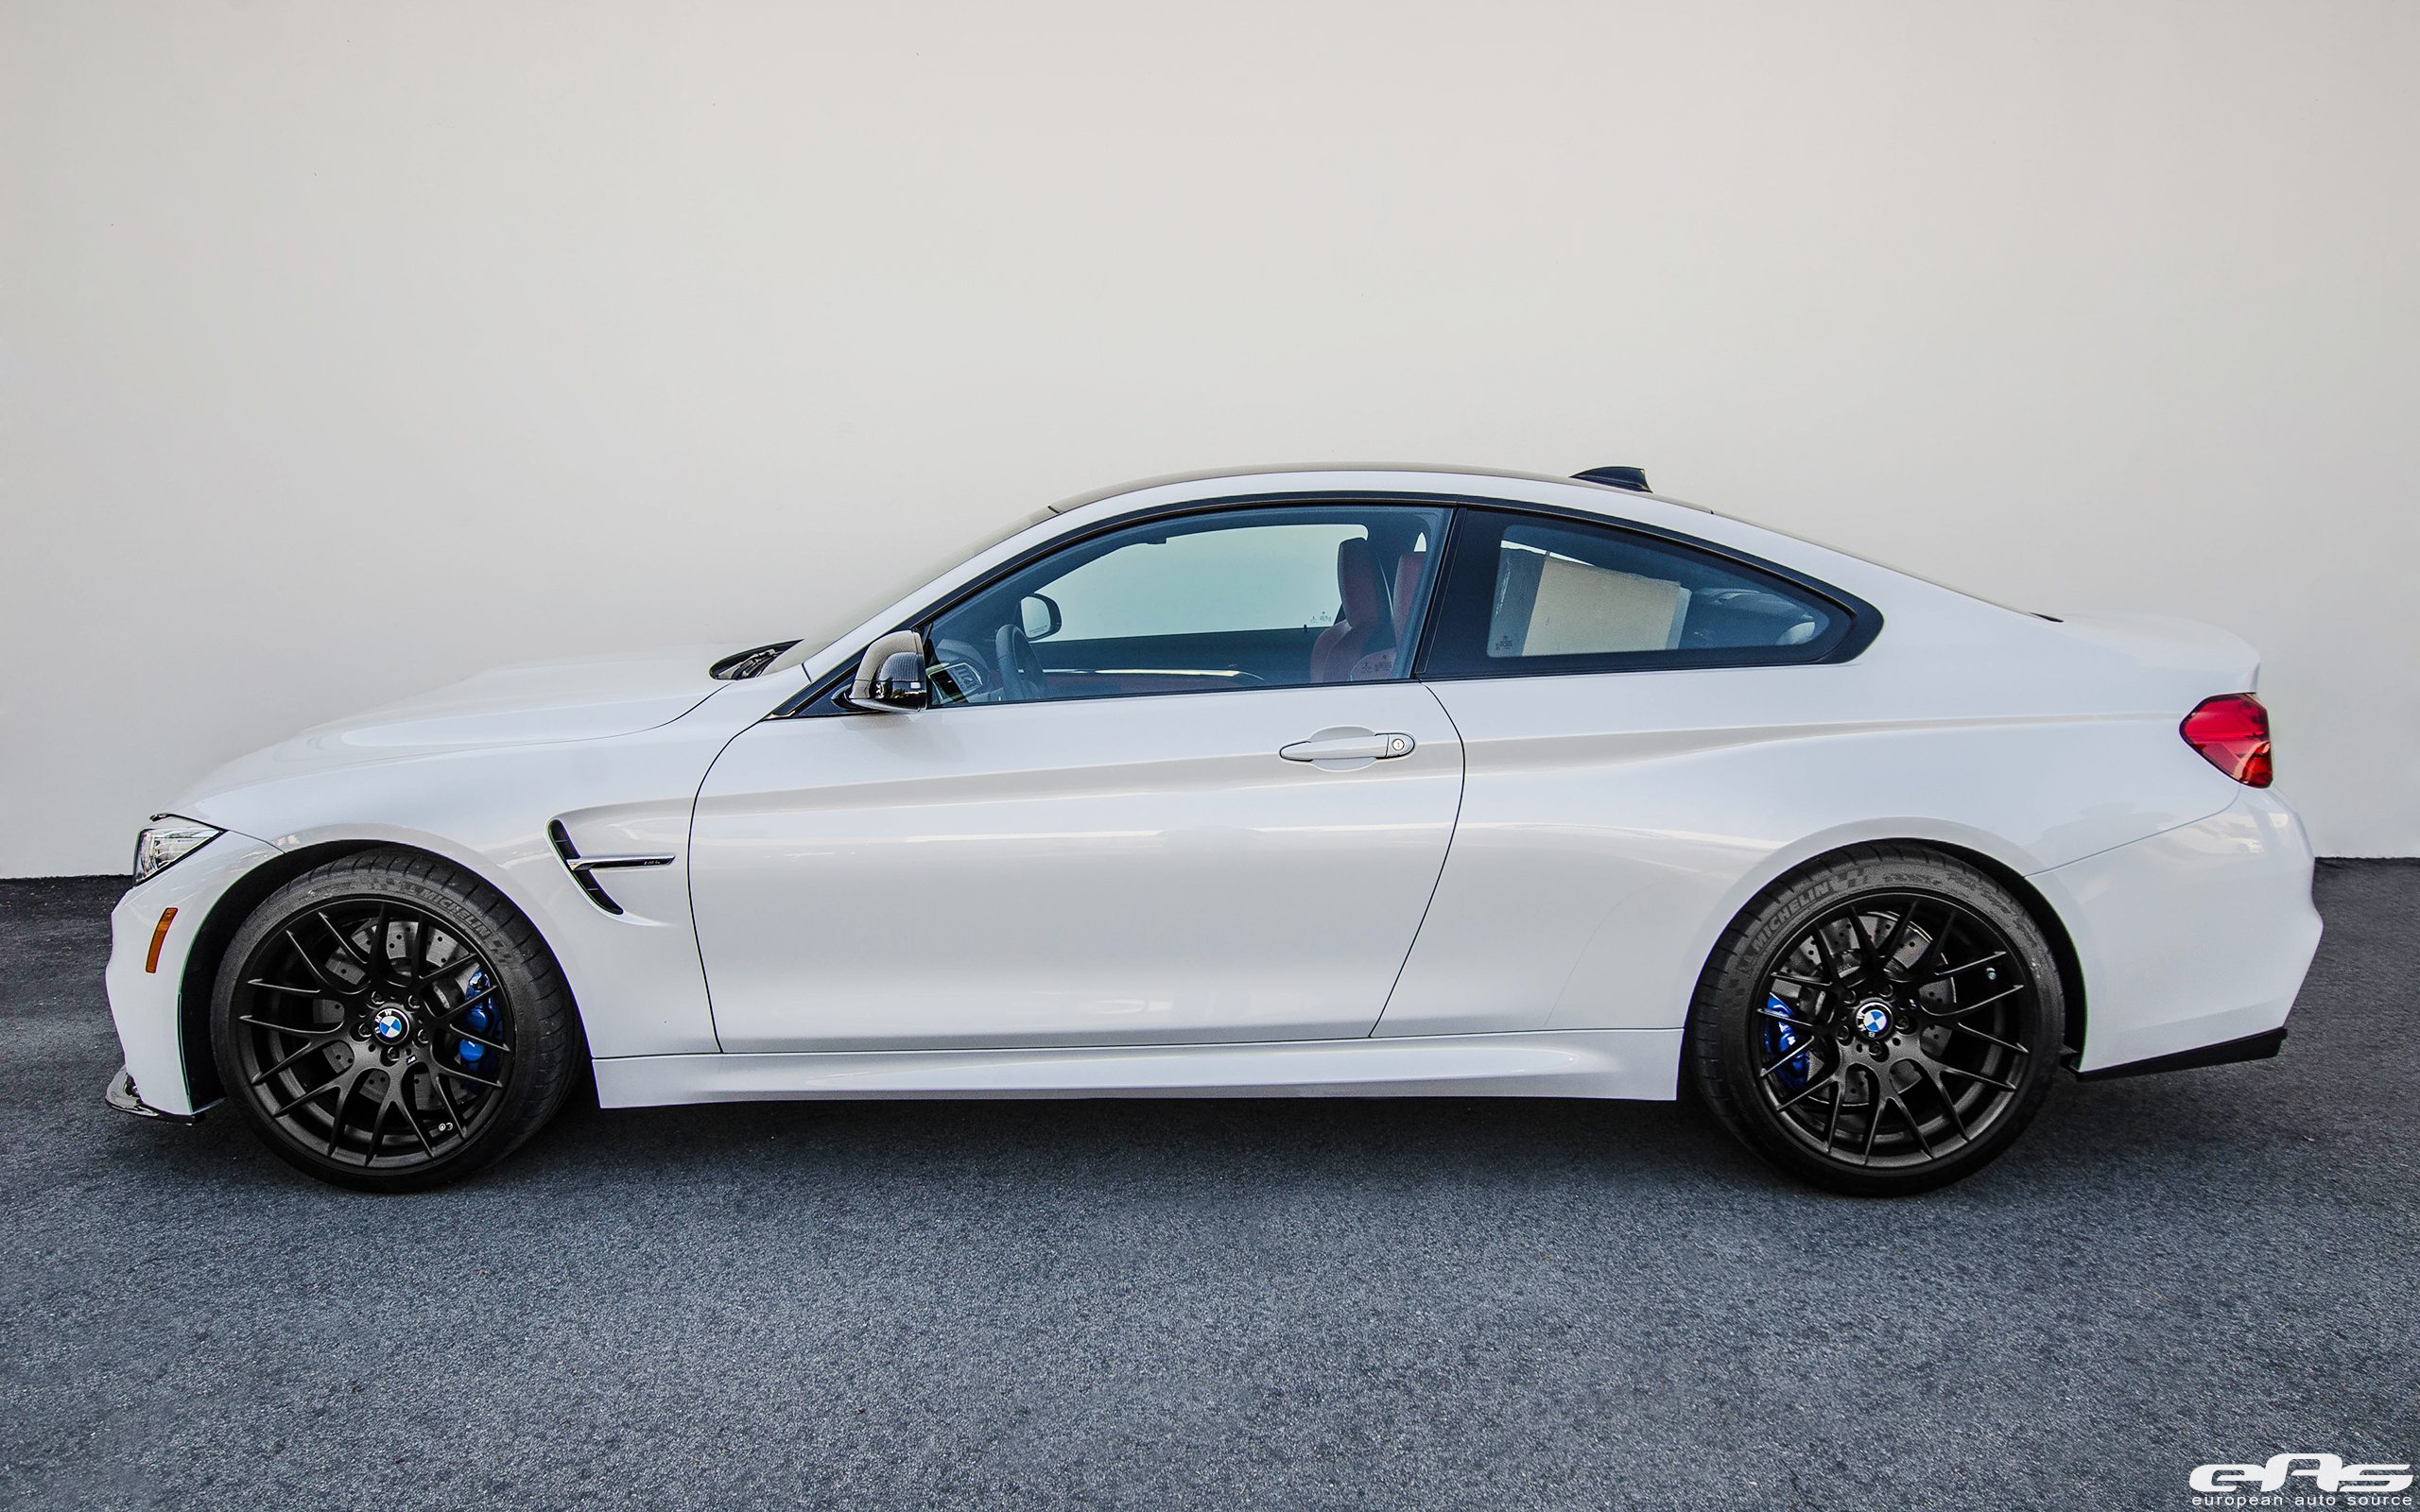 359 Competition Wheels For An F82 Bmw Performance Parts